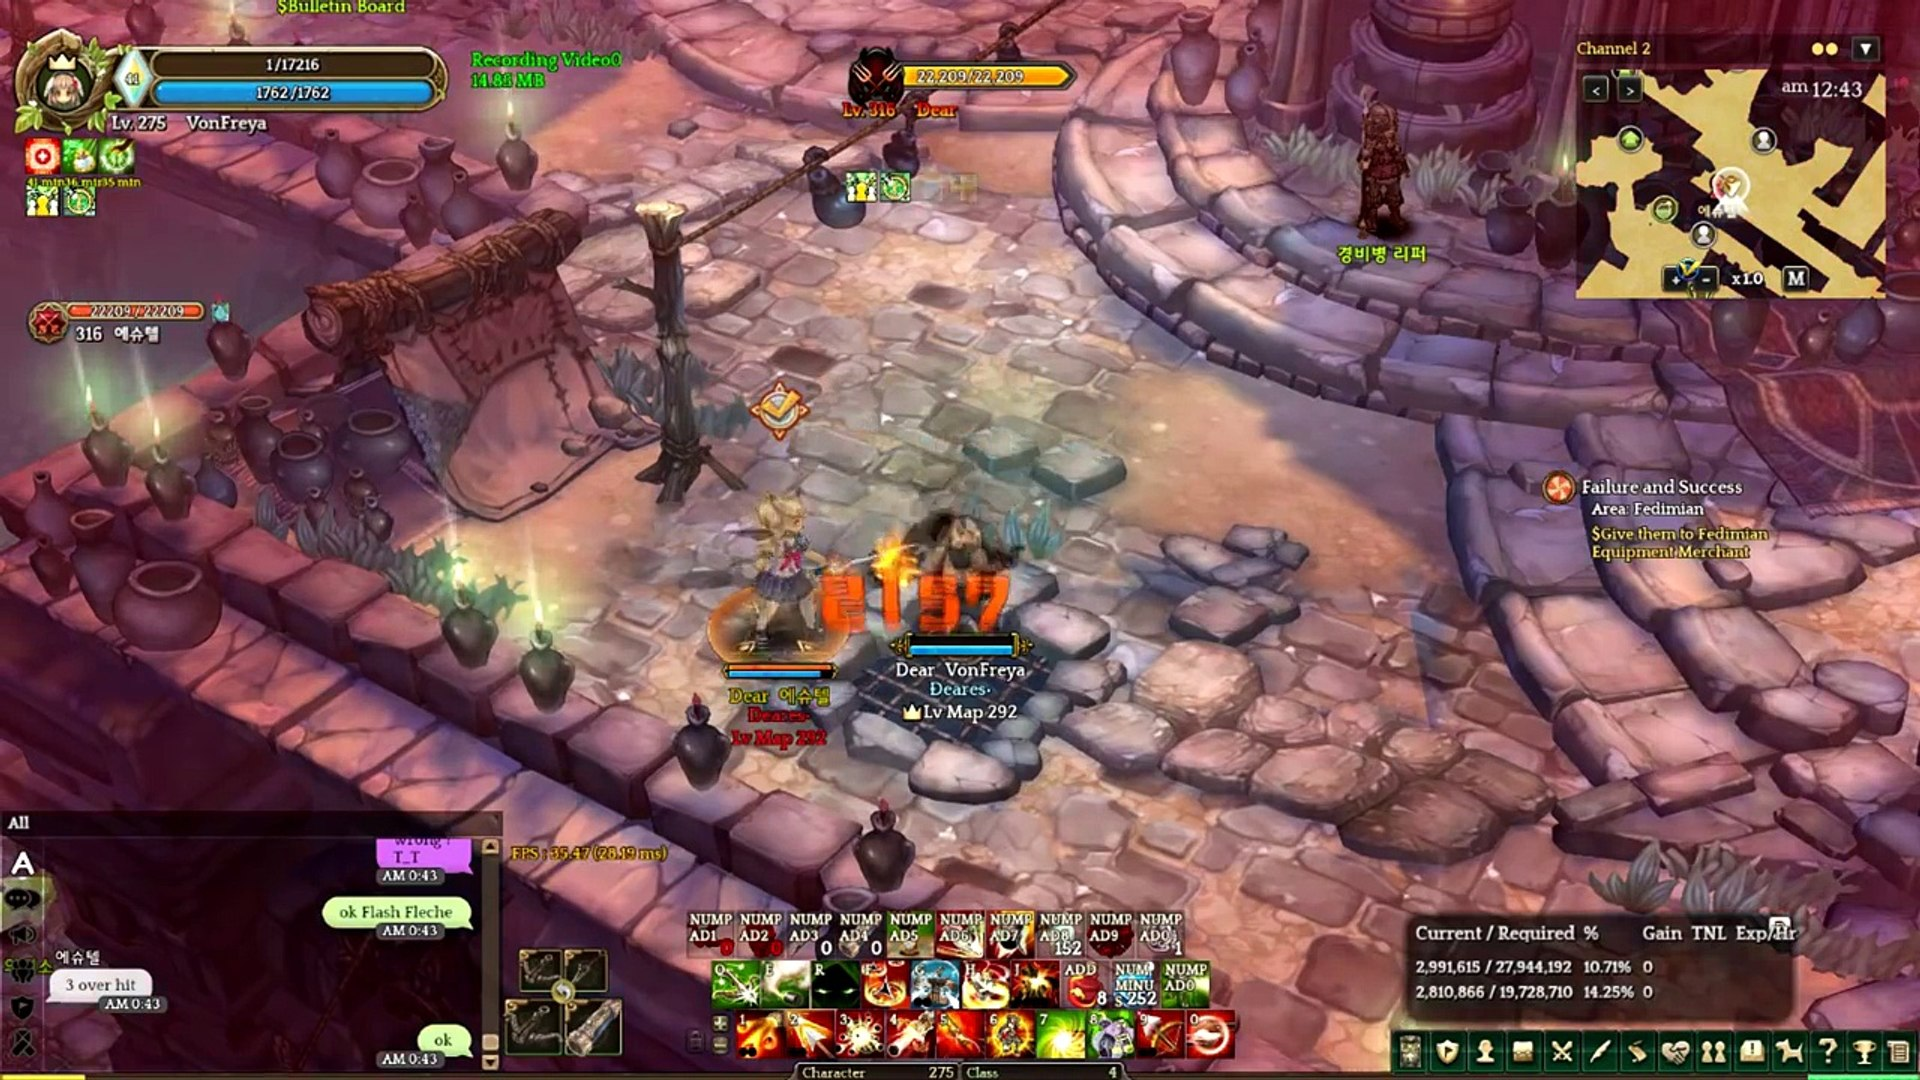 Tree of Savior [KR] Rank 8 Fencer Skill Introduction, The DEADLY STING : ONE STAB MAN !!